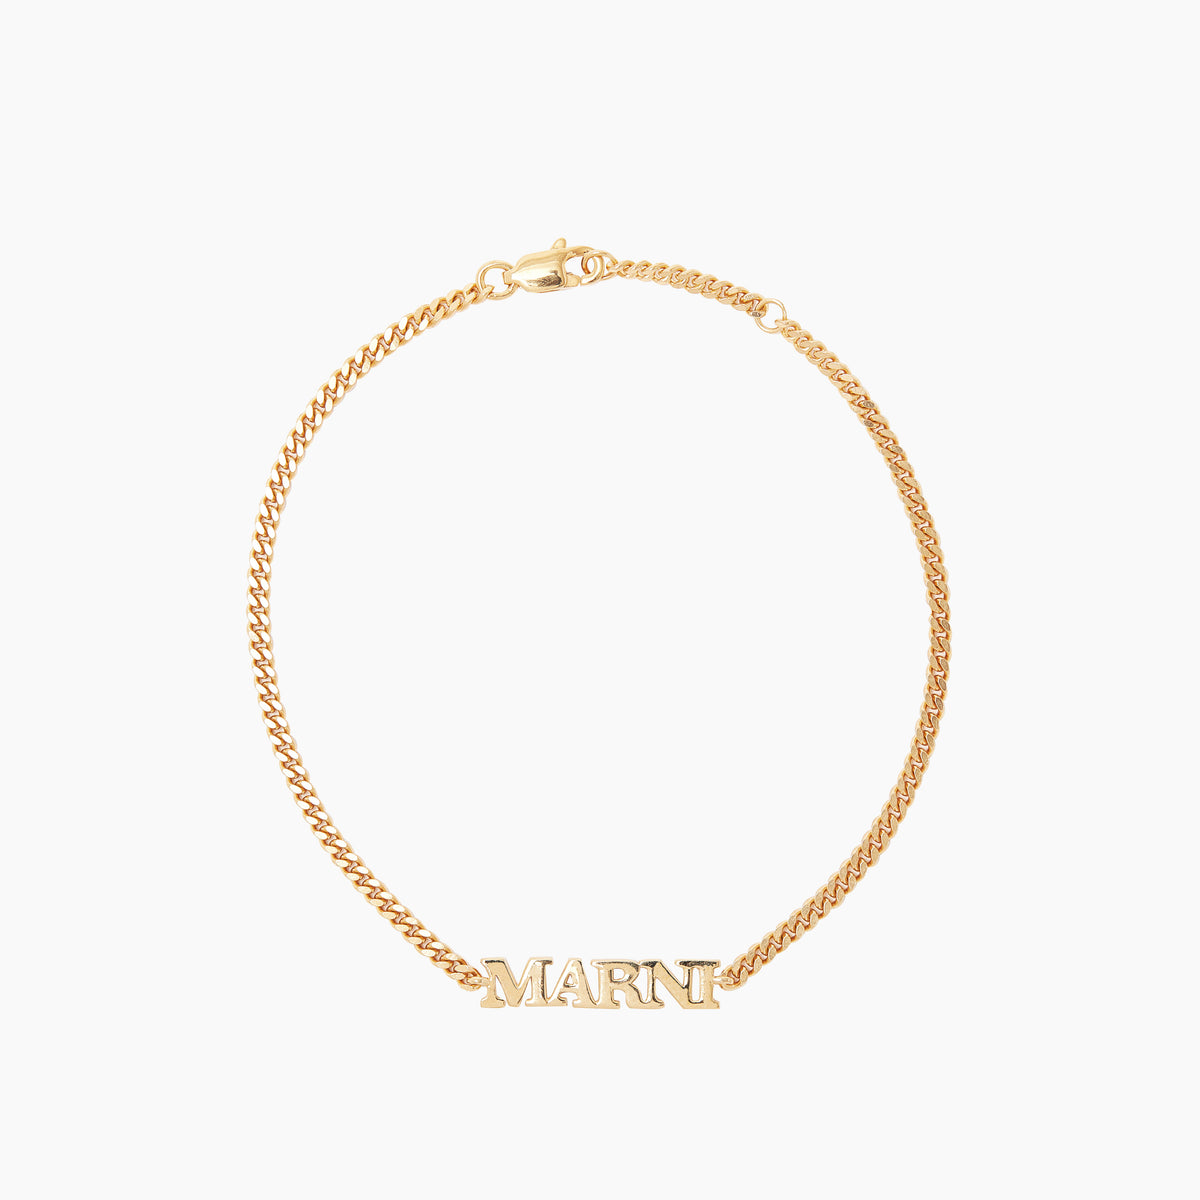 Personalised Name Bracelet (Solid 9k Yellow Gold)